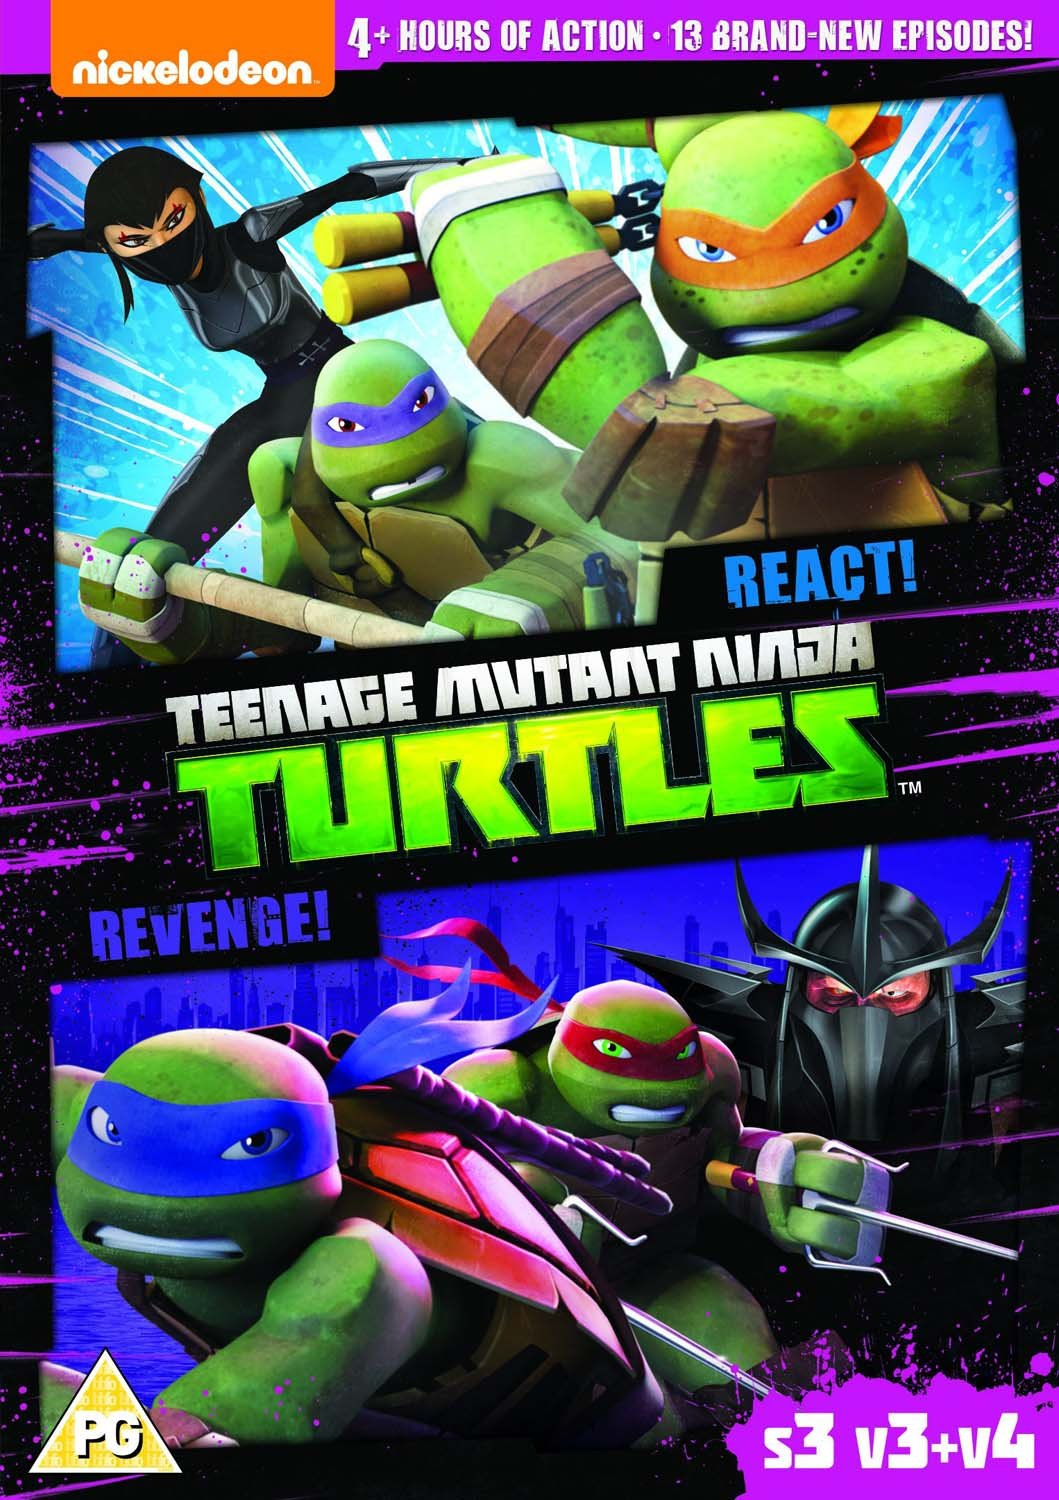 Amazon.com: Teenage Mutant Ninja Turtles – React & Revenge ...